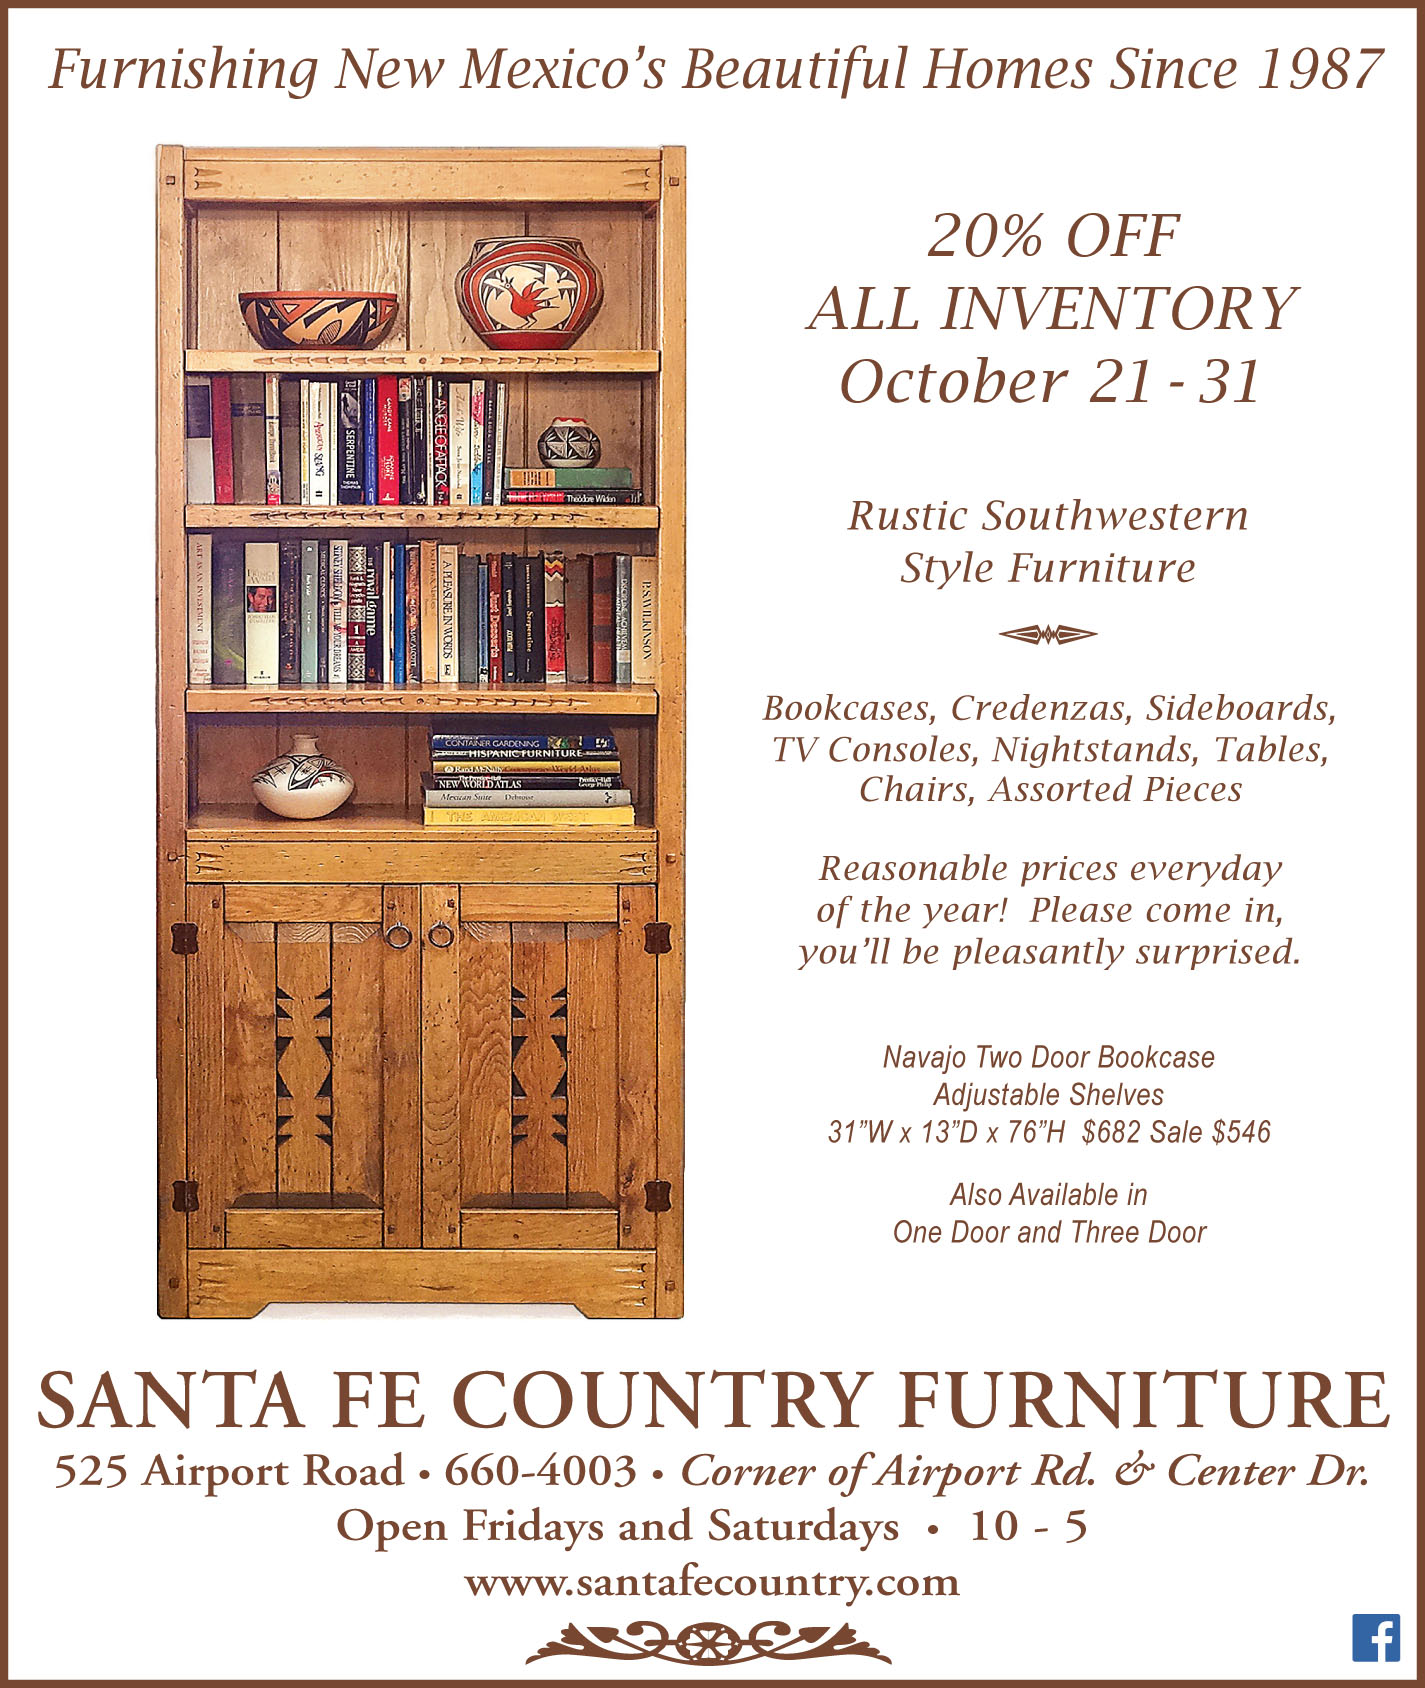 Santa Fe Country Furniture Home : adnavbookcasesale102016 from www.santafecountry.com size 1425 x 1688 jpeg 481kB